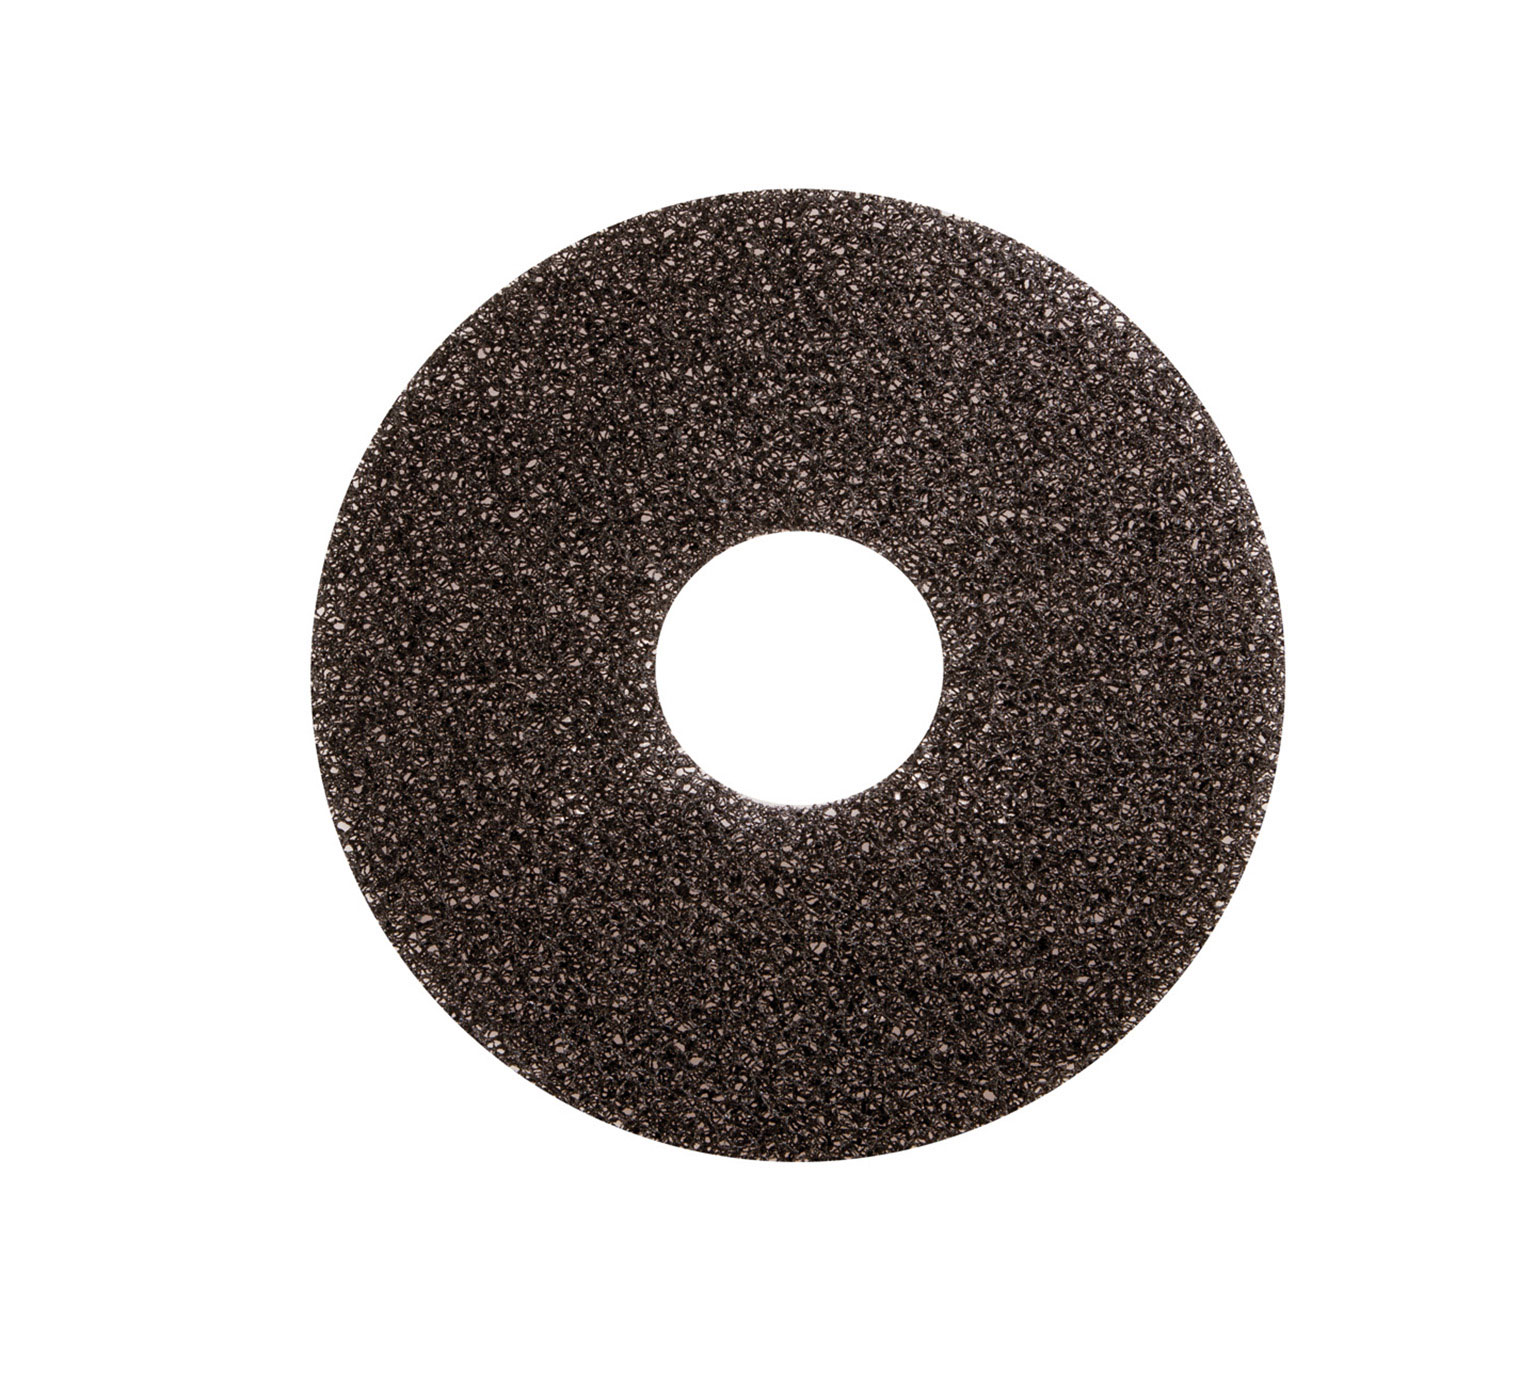 1063334 3M Black Stripping Pad – 12 in / 304.8 mm alt 1